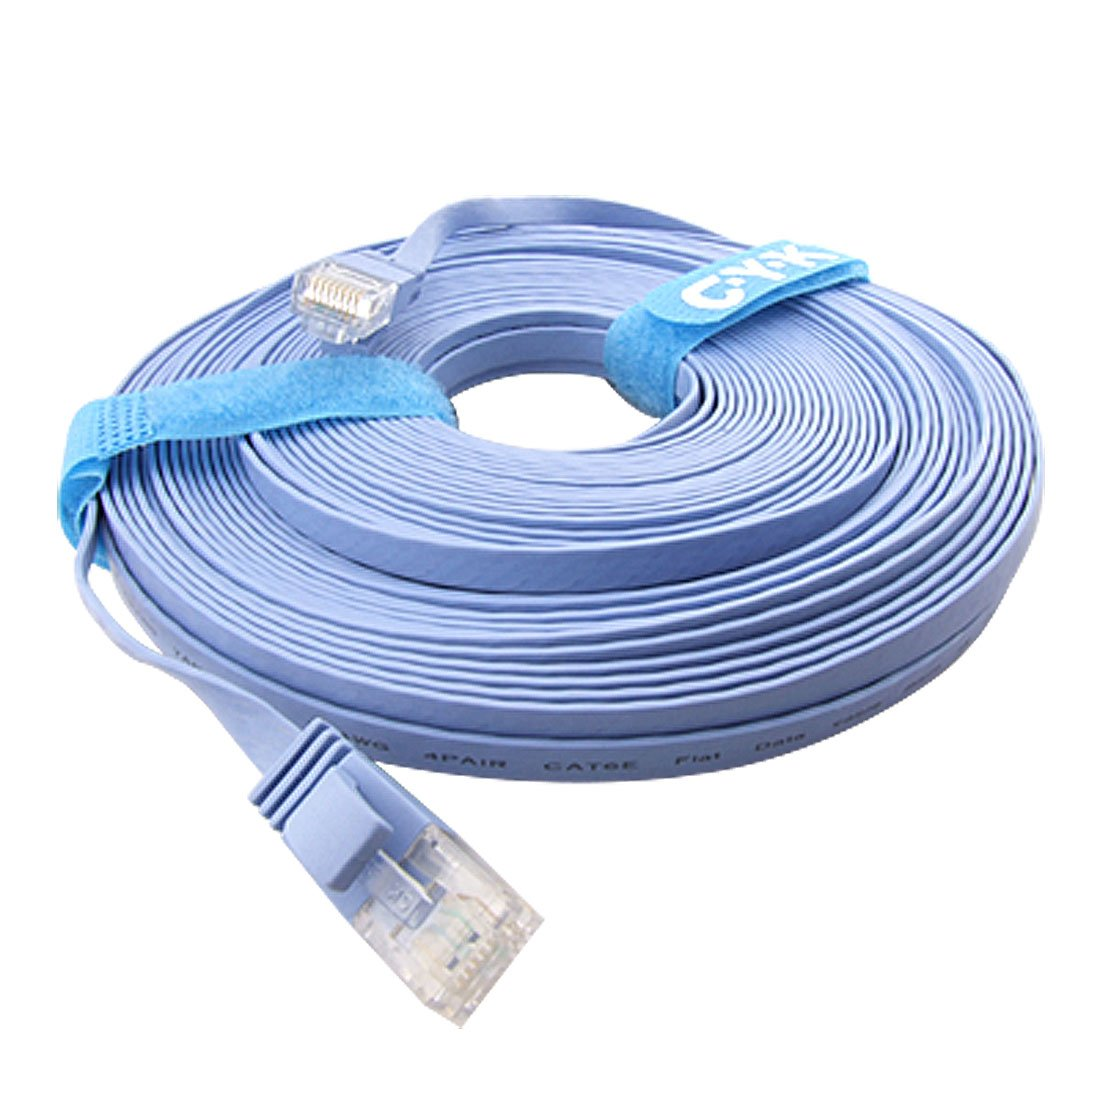 PROMOTION! 20M CAT6 Flat UTP Ethernet Network Cable RJ45 Patch LAN Cord Blue